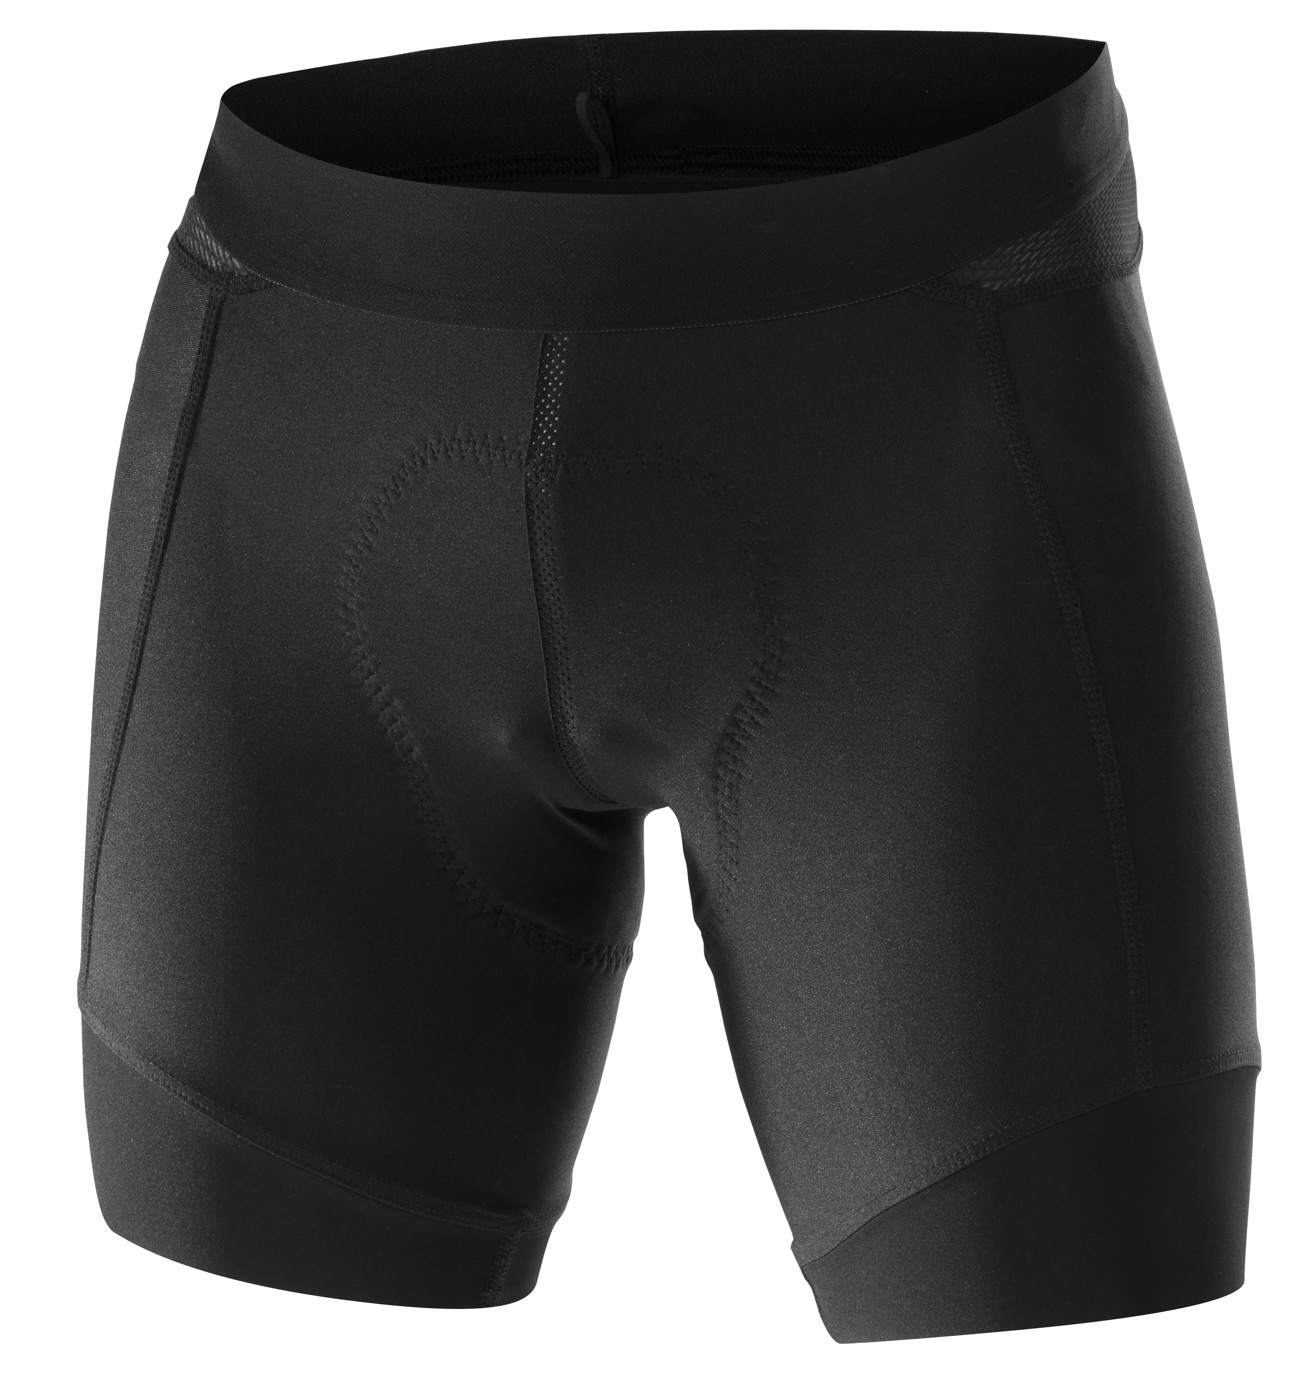 LÖFFLER M CYCLING SHORTS LIGHT HOTBOND - Herren